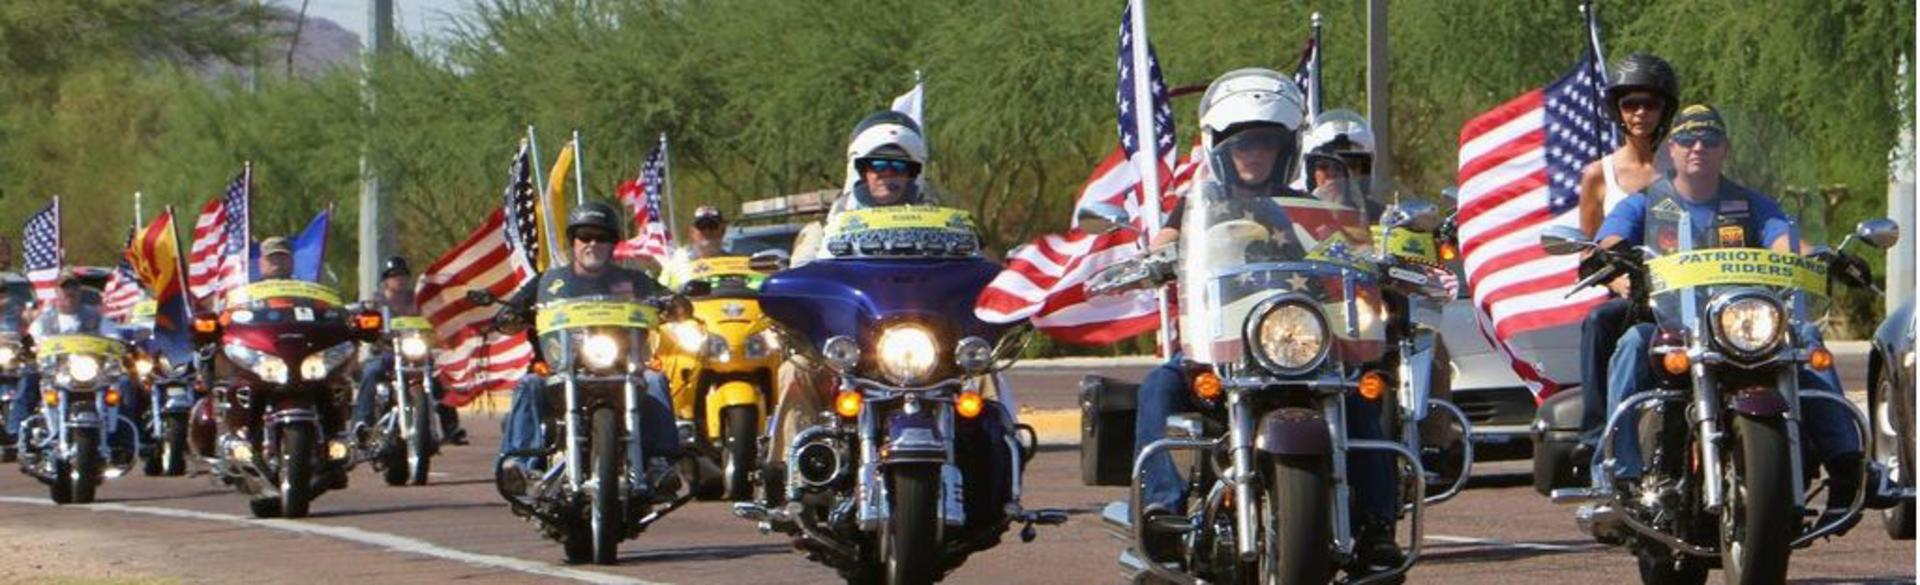 Freedom Cruise Bikers